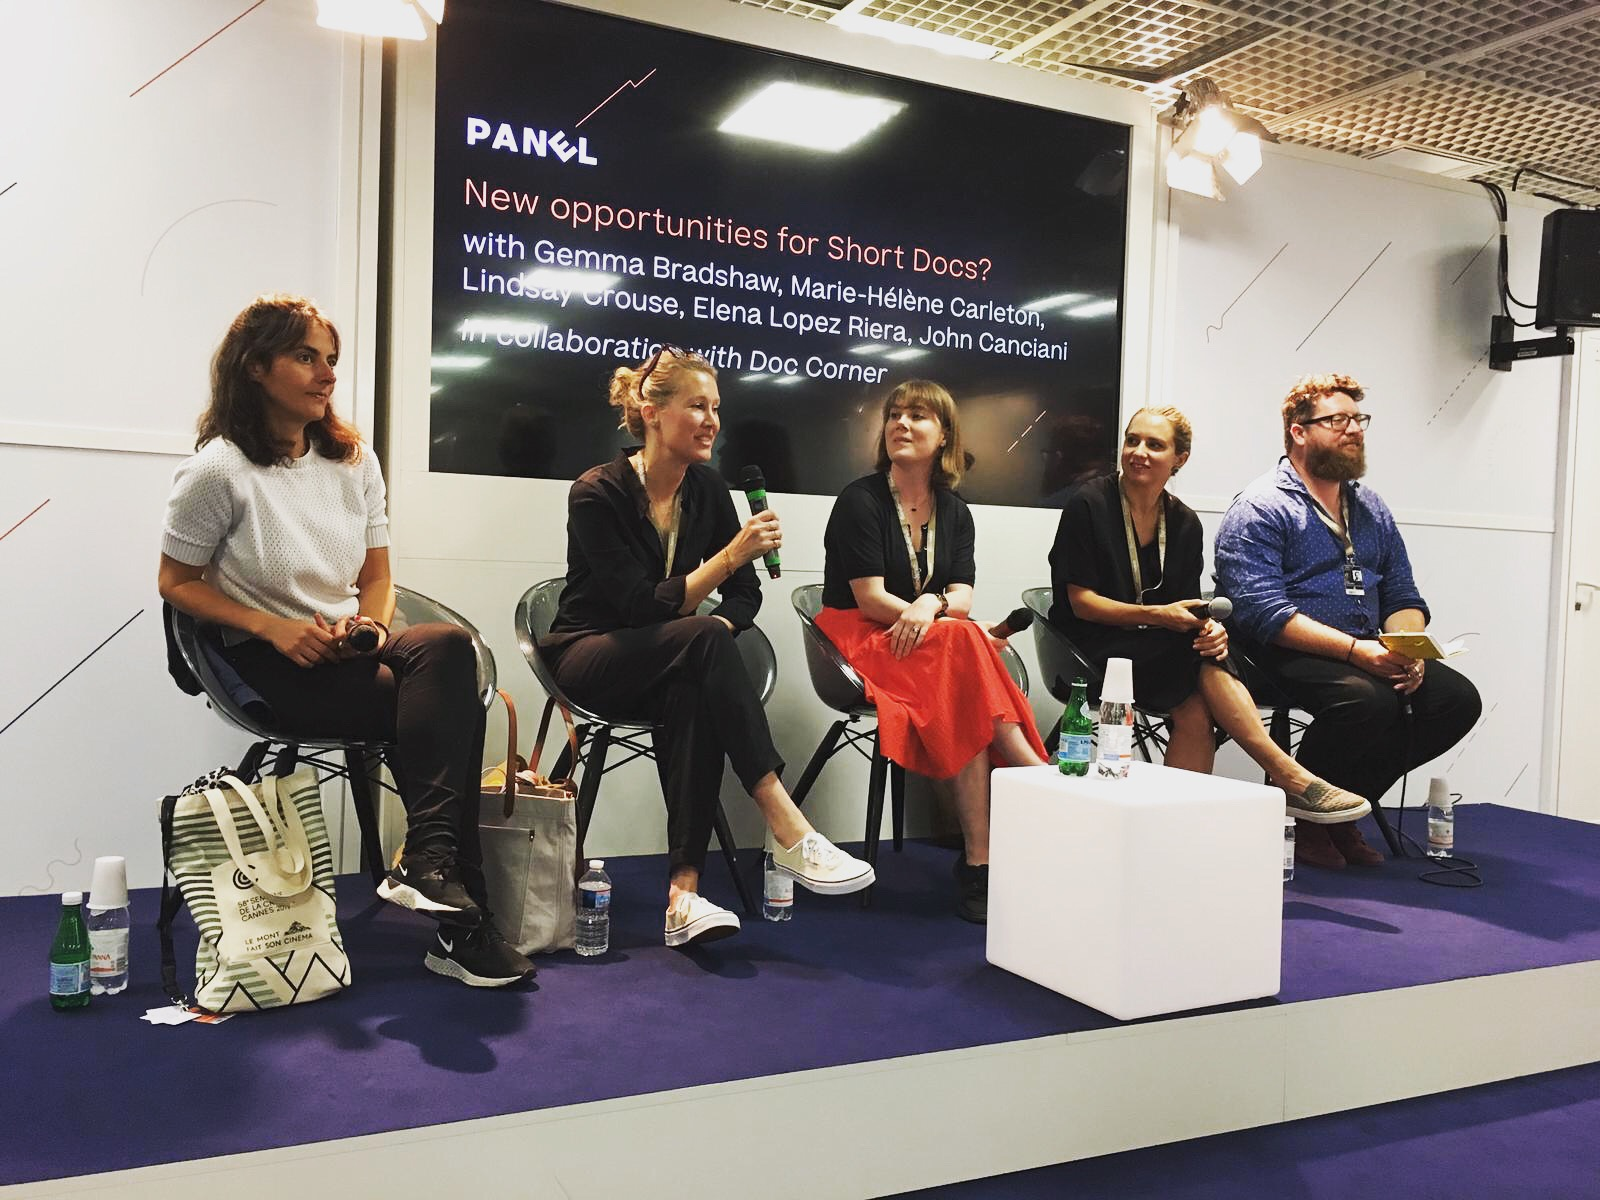 Marie-Hélène joins New Opportunities for Short Docs panel at Cannes - The Cannes Doc Corner panel discussed the current state and future landscape of short documentary films, tackling current issues like sustainability in filmmaking.